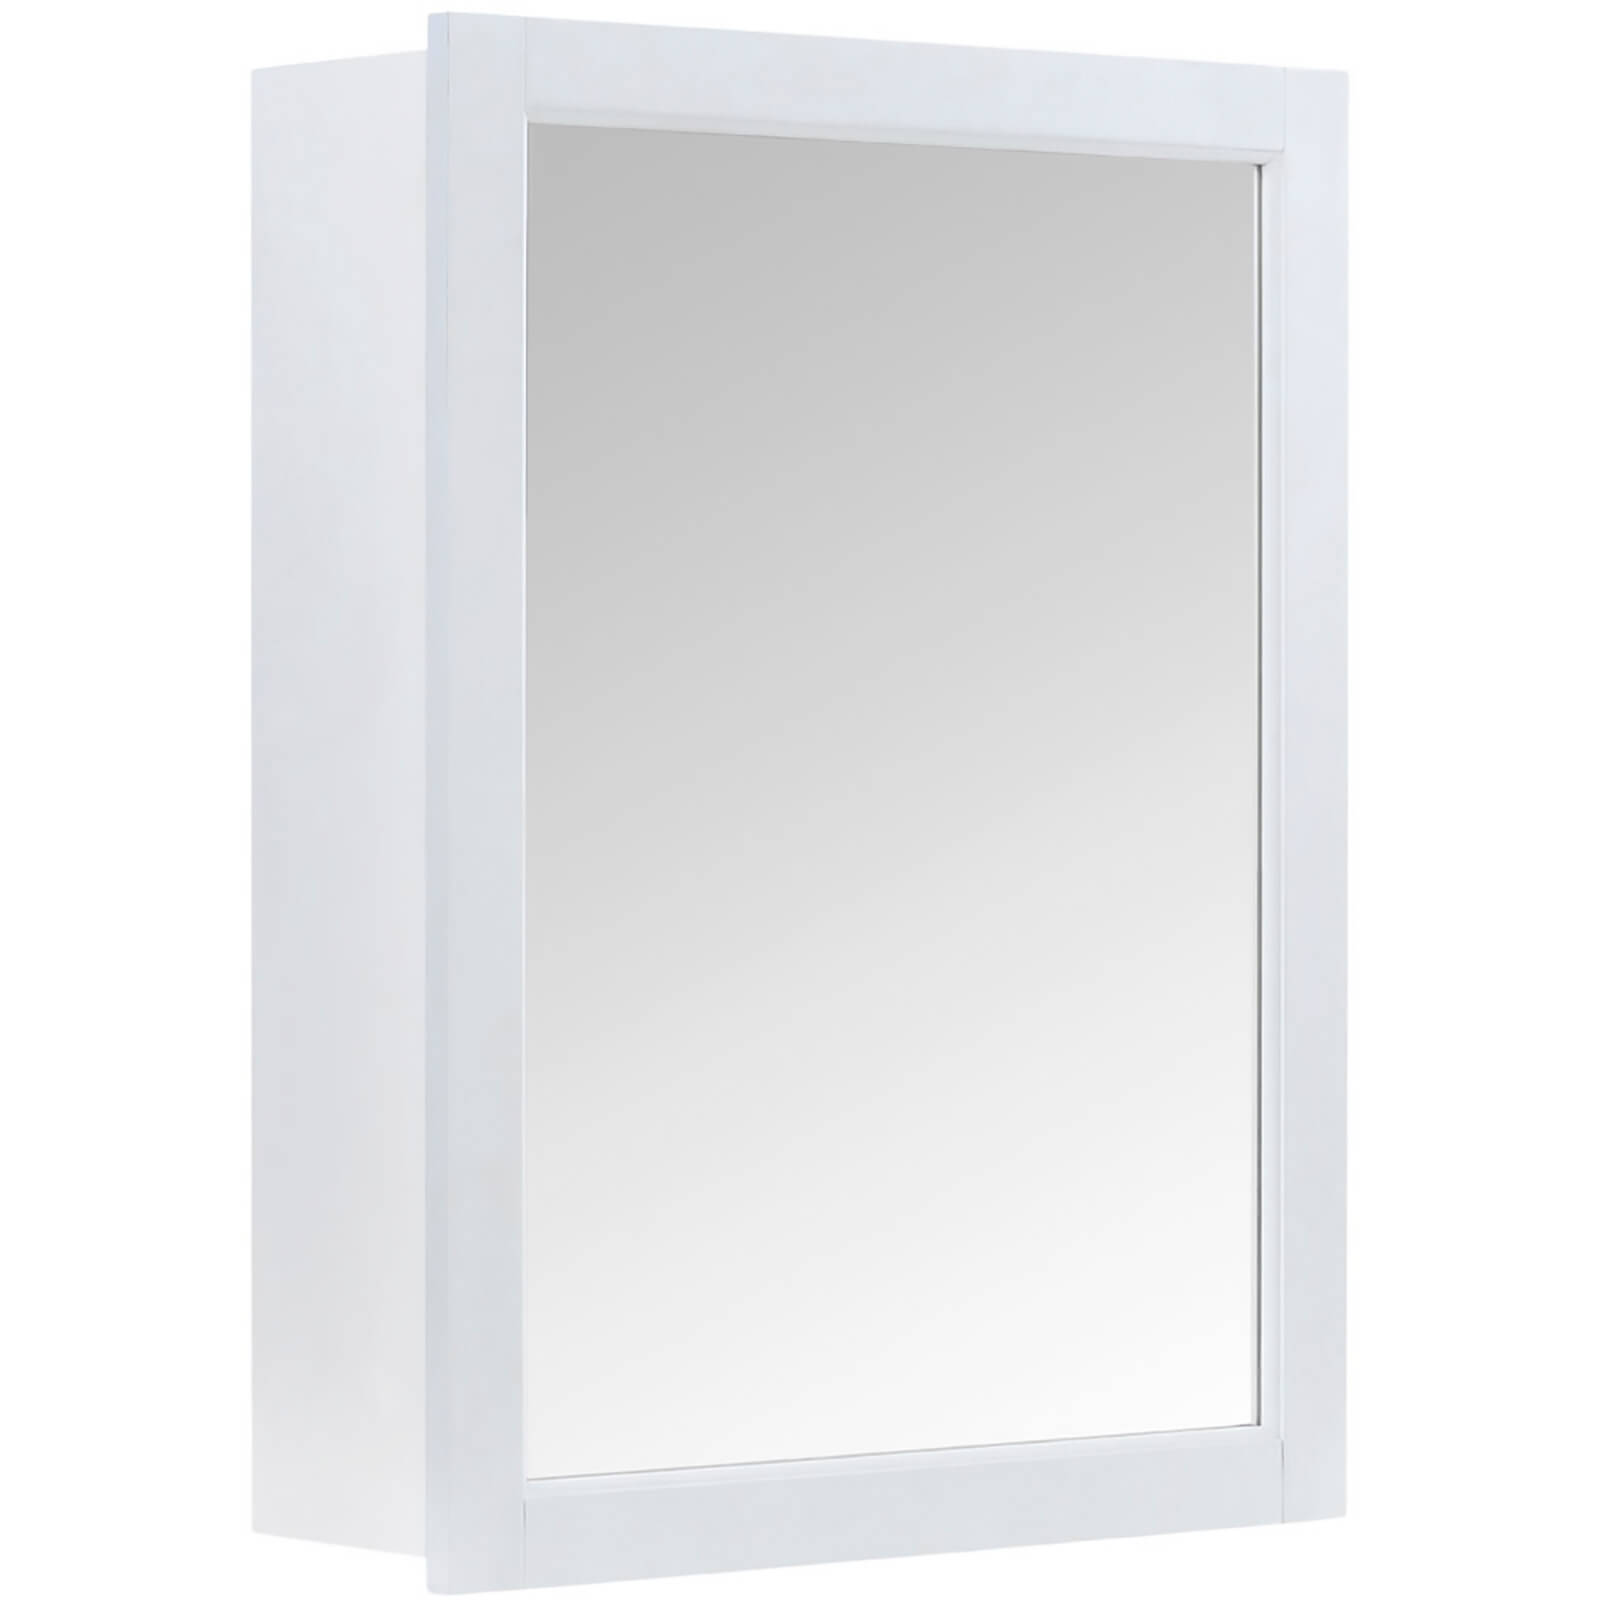 Bathroom Mirrored Wall Cabinet - White Wood